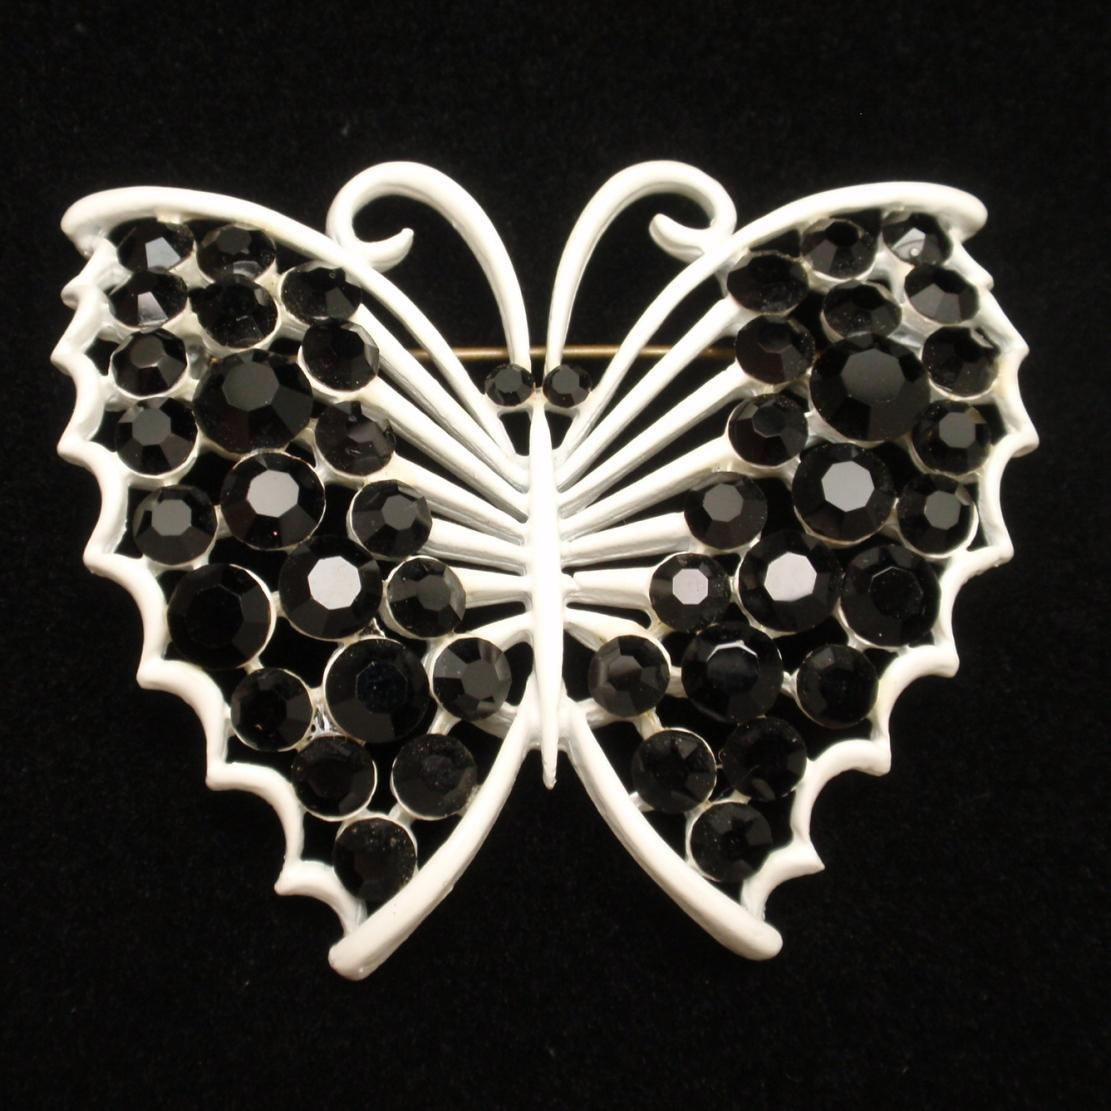 Butterfly Brooch Pin Graphic Black & White Vintage Enamel Rhinestones